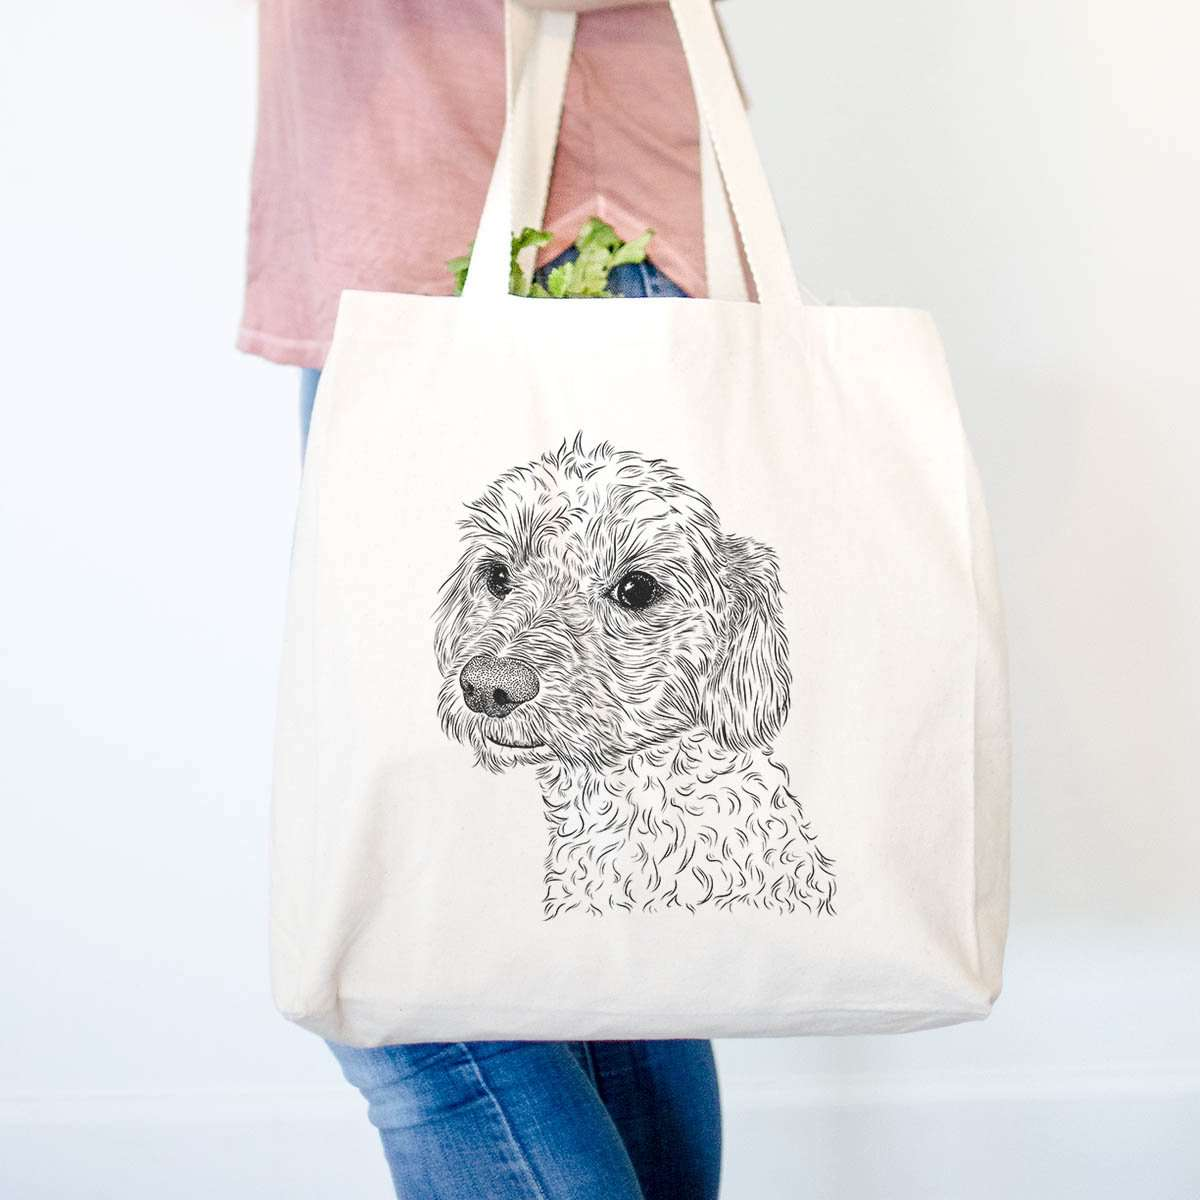 Georgie Boy the Mixed Breed - Tote Bag